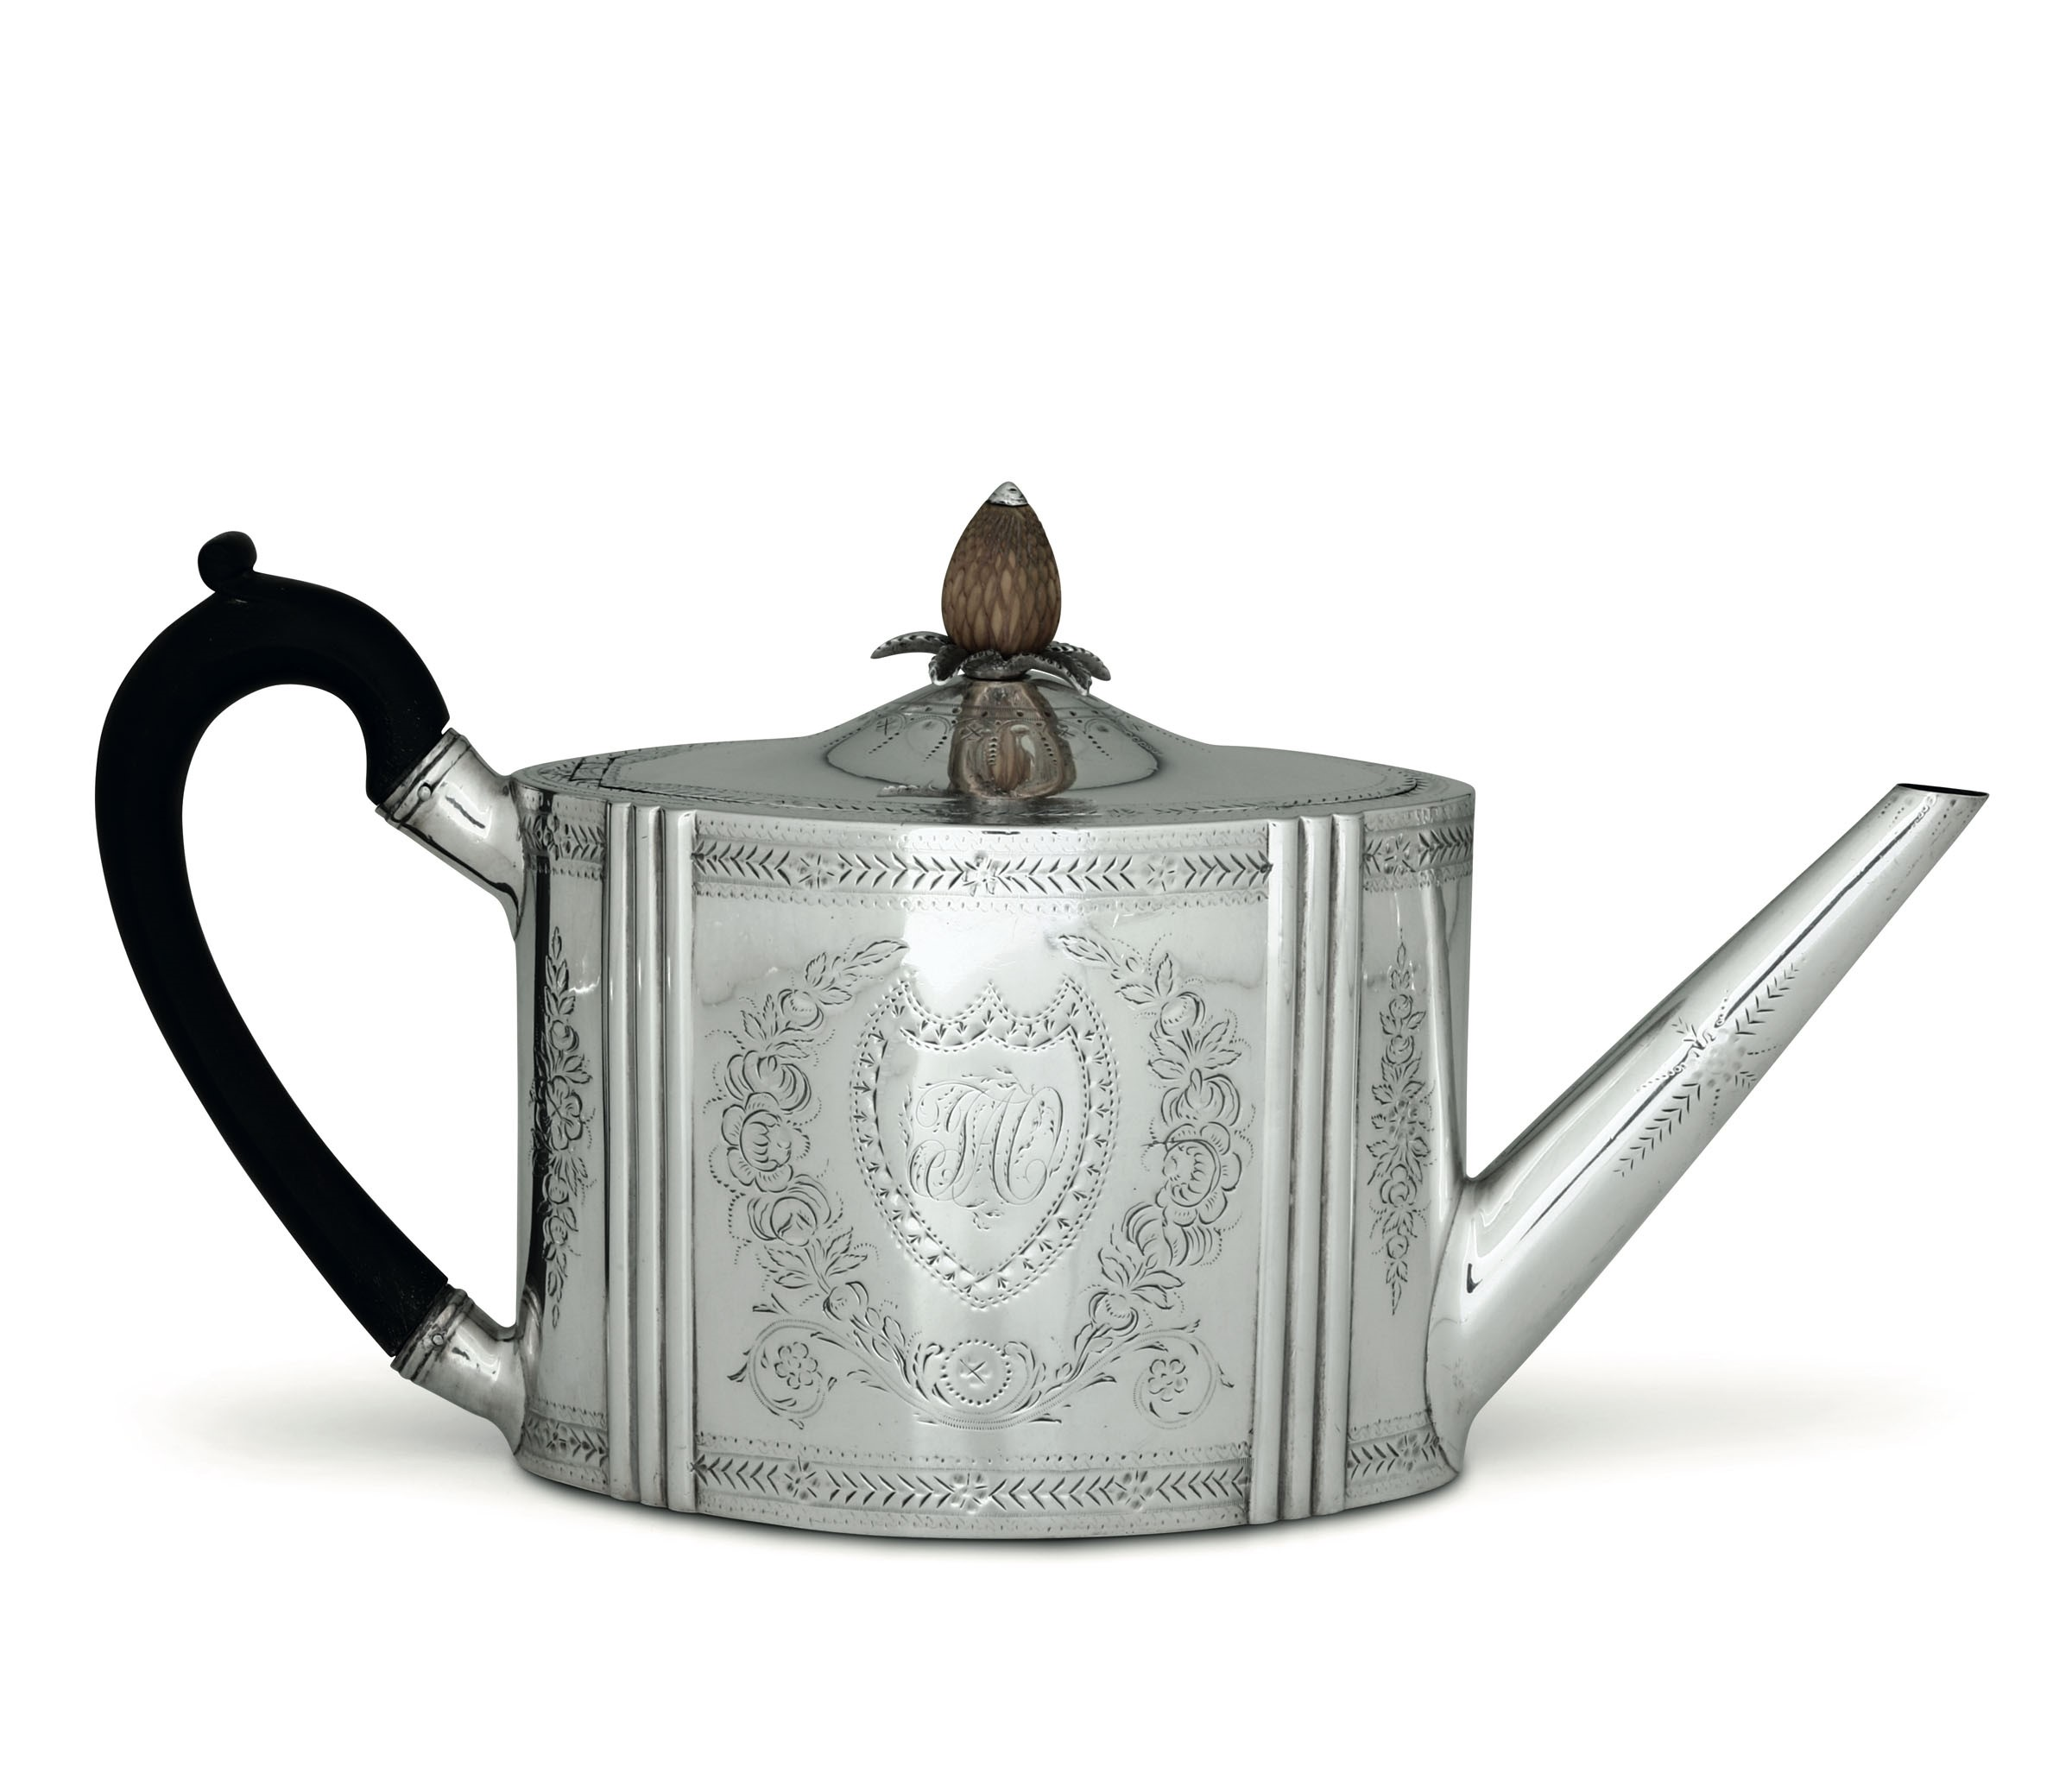 Lot 29 - A silver teapot, London, 1838 - Molten, embossed and chiselled silver. Silversmith [...]